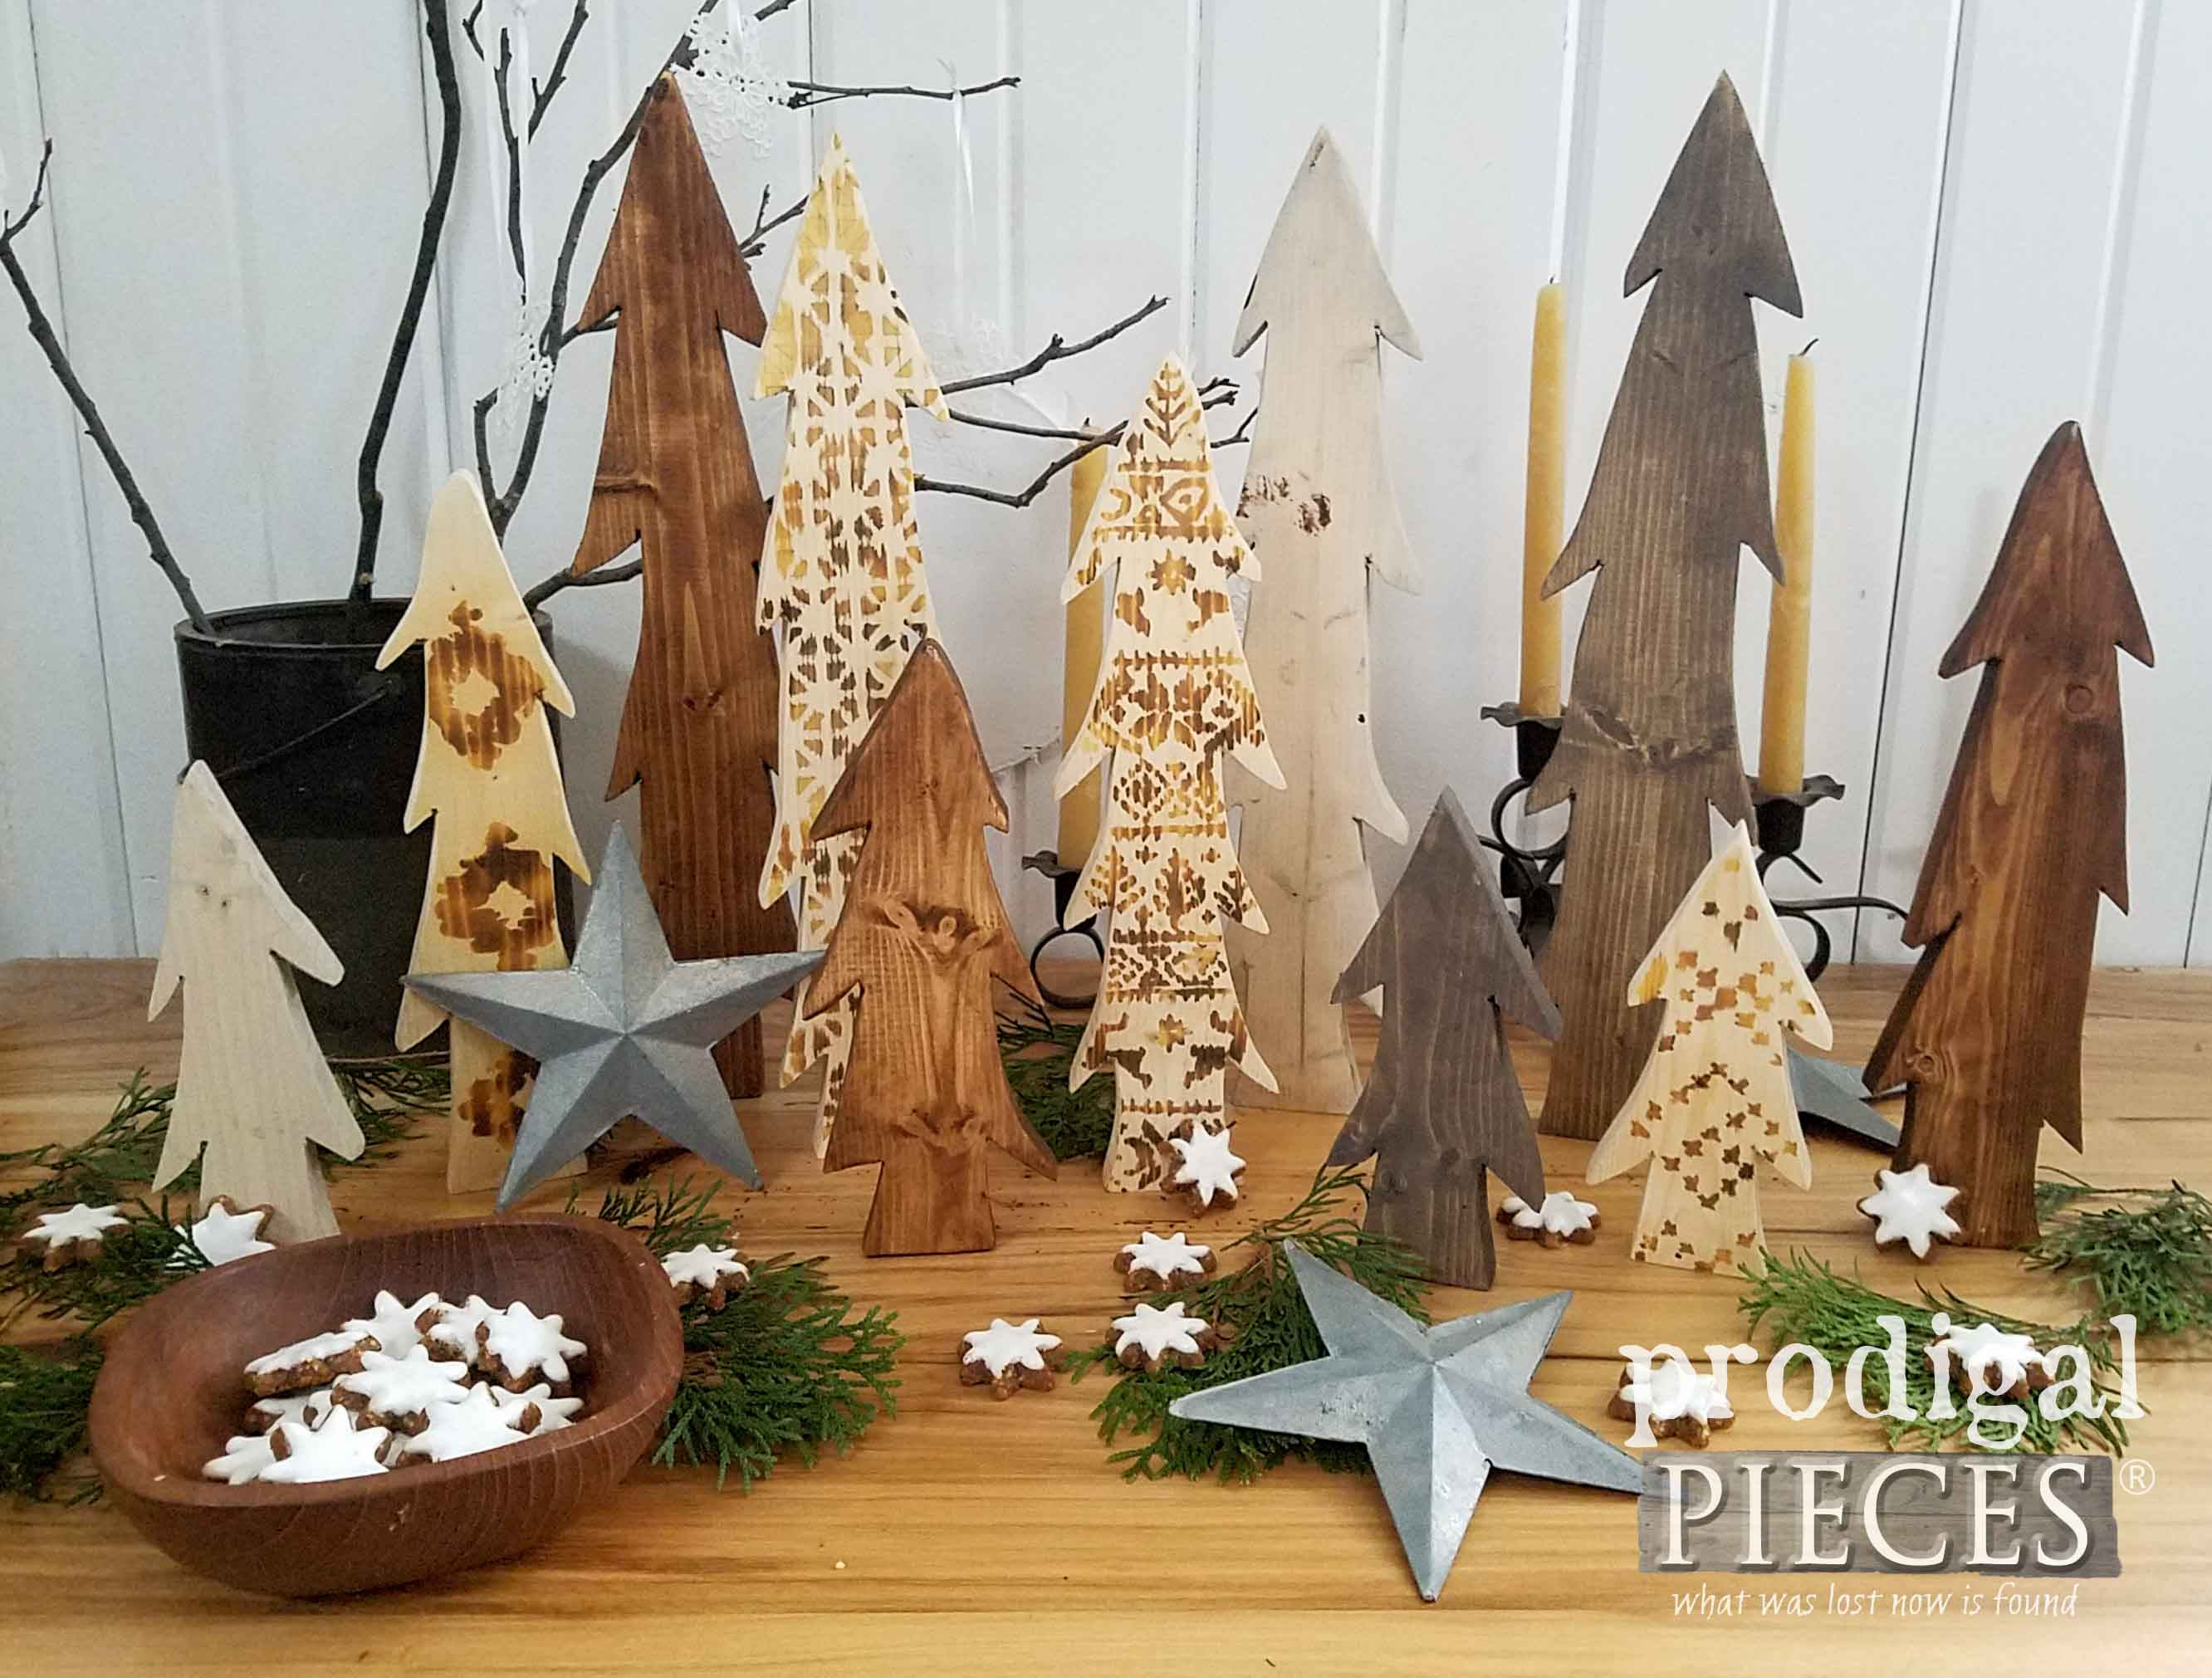 Nordic Wooden Tree Display with Wood Burned Trees. DIY tutorial at Prodigal Pieces | prodigalpieces.com